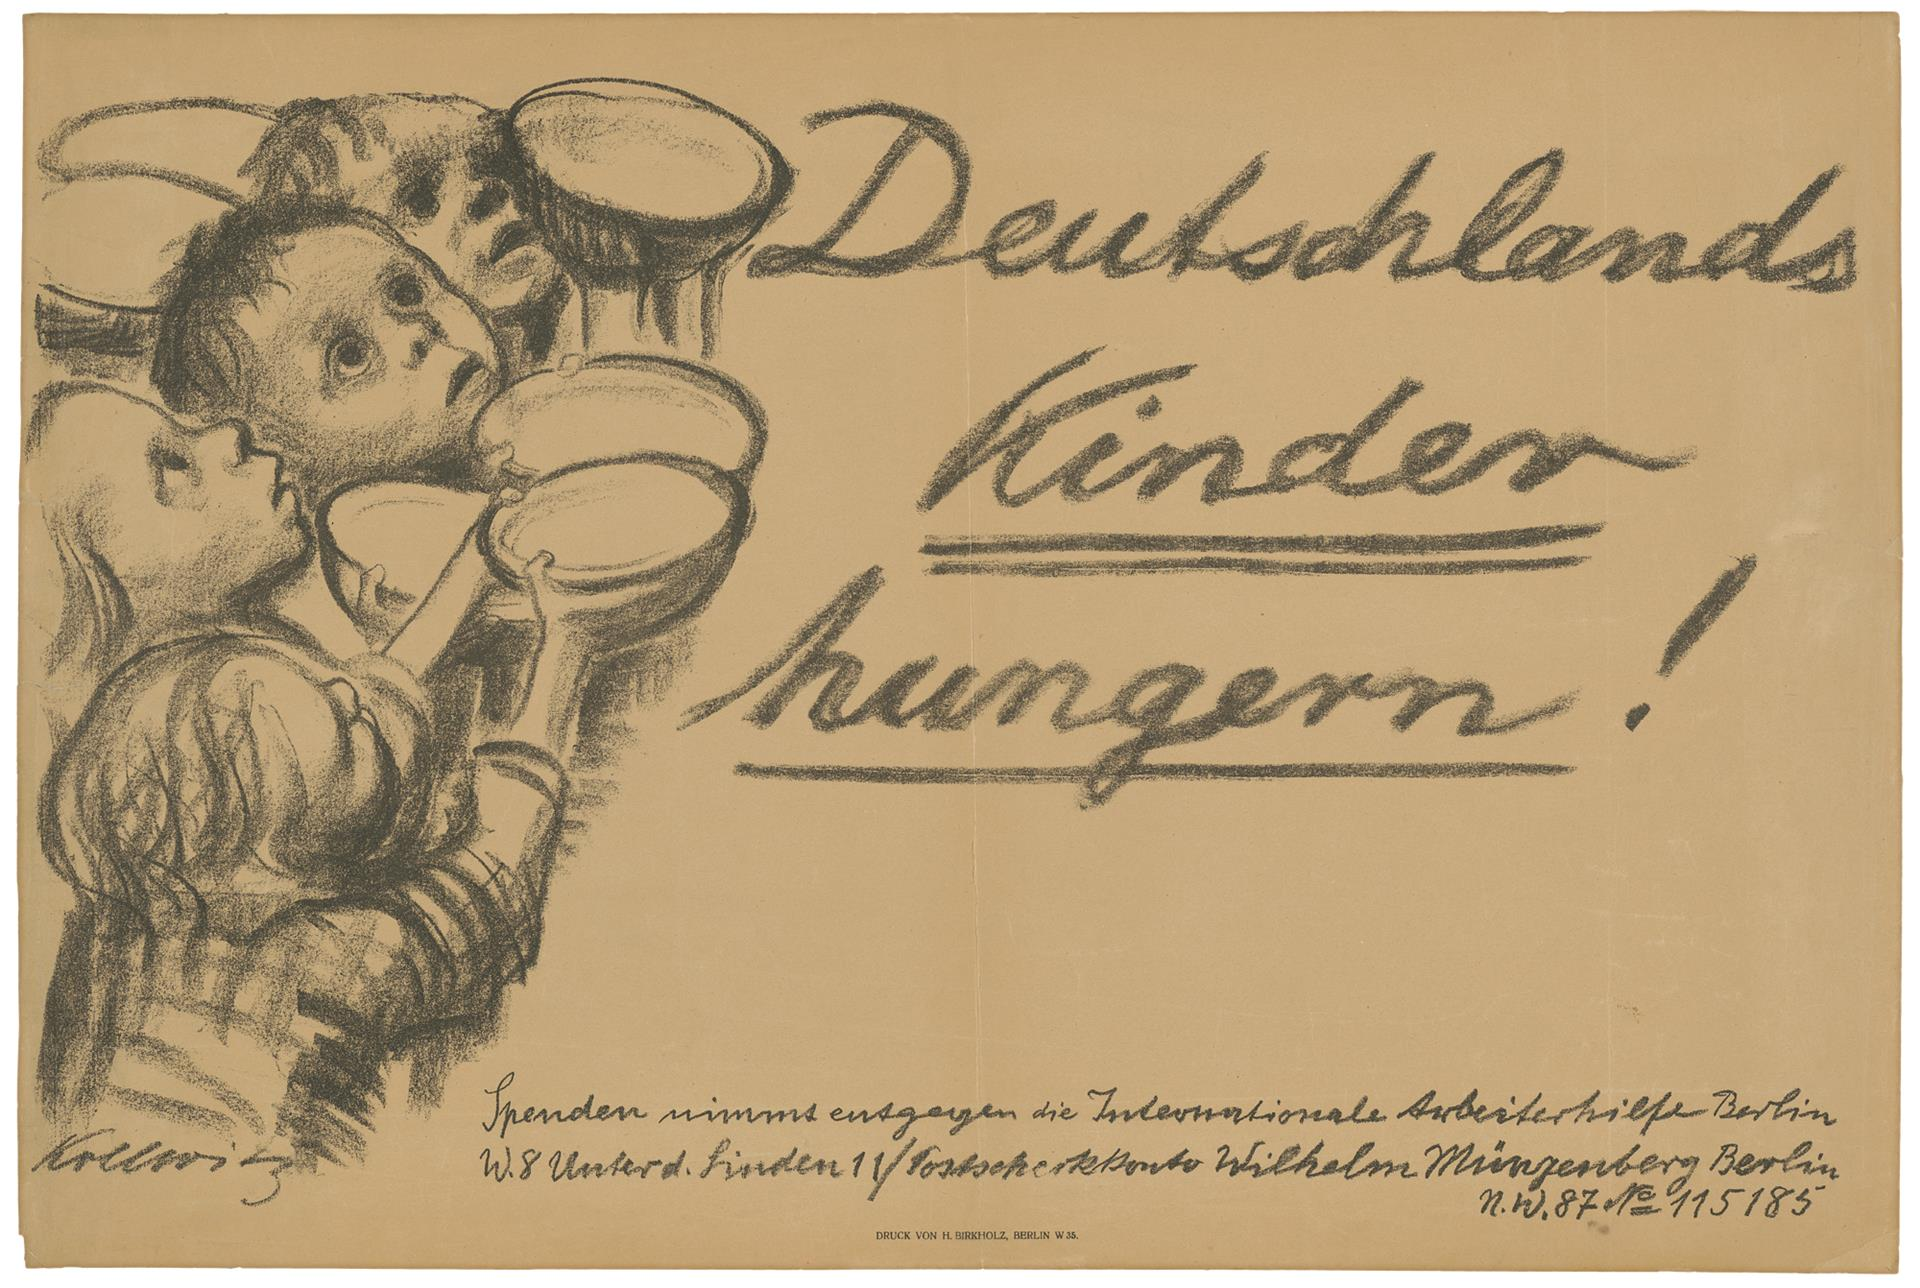 Käthe Kollwitz, Poster »Germany's Children are starving!«, 1923, crayon lithograph (transfer), Kn 202 B, Cologne Kollwitz Collection © Käthe Kollwitz Museum Köln